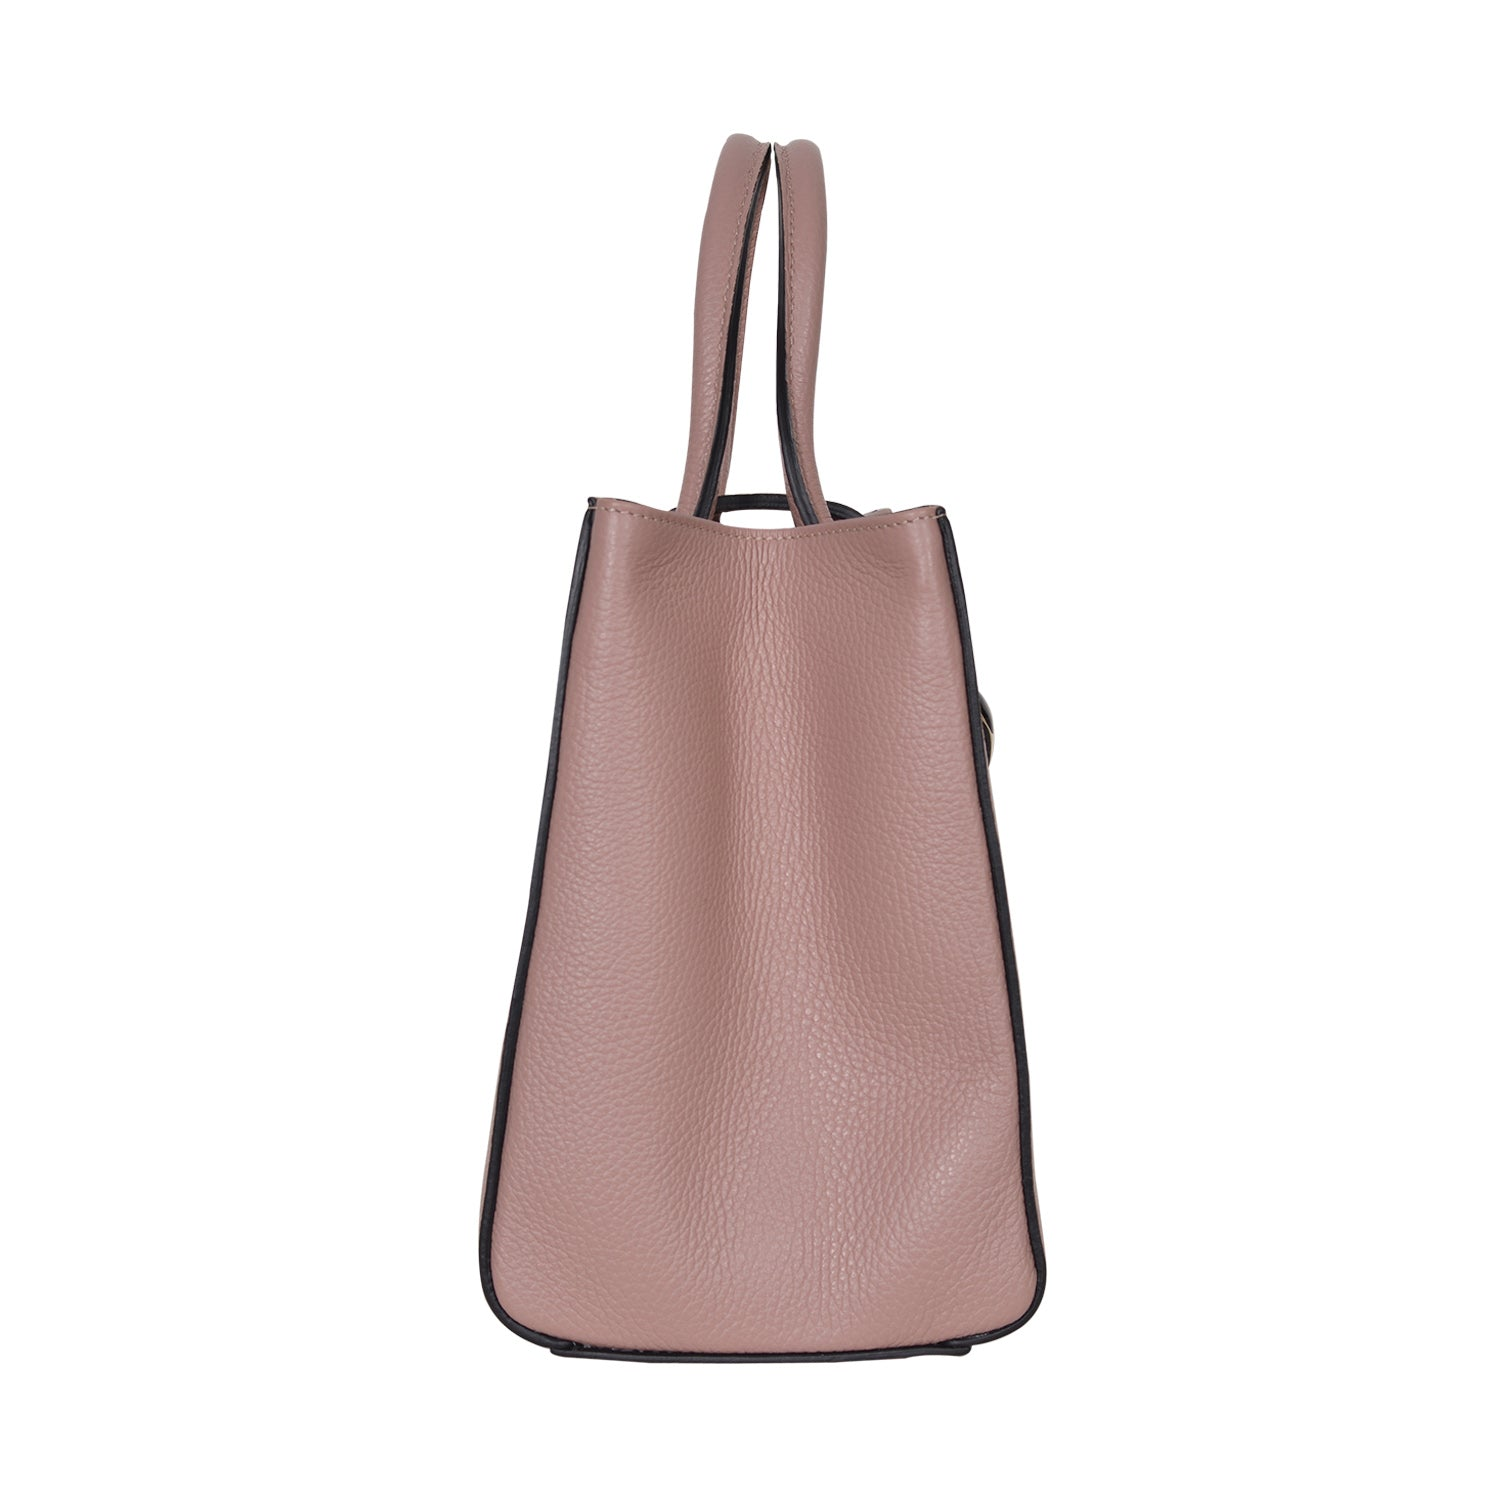 F.E.V  WOMEN'S LEATHER PINK CITY TOTE BAG